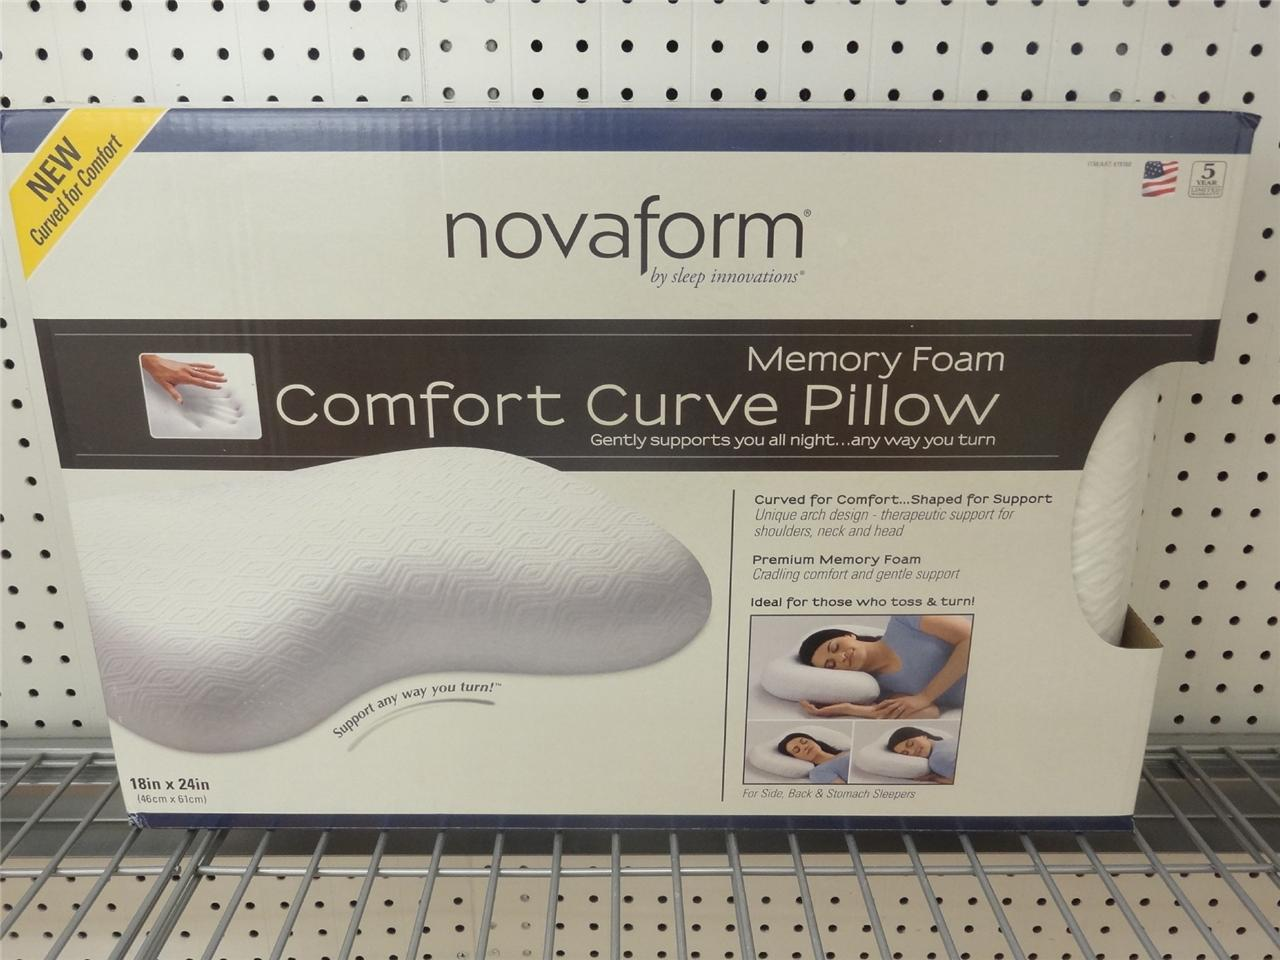 Cradling Comfort Elite Traditional Memory Foam Pillow : NEW! Novaform Memory Foam Comfort Curve Pillow 18